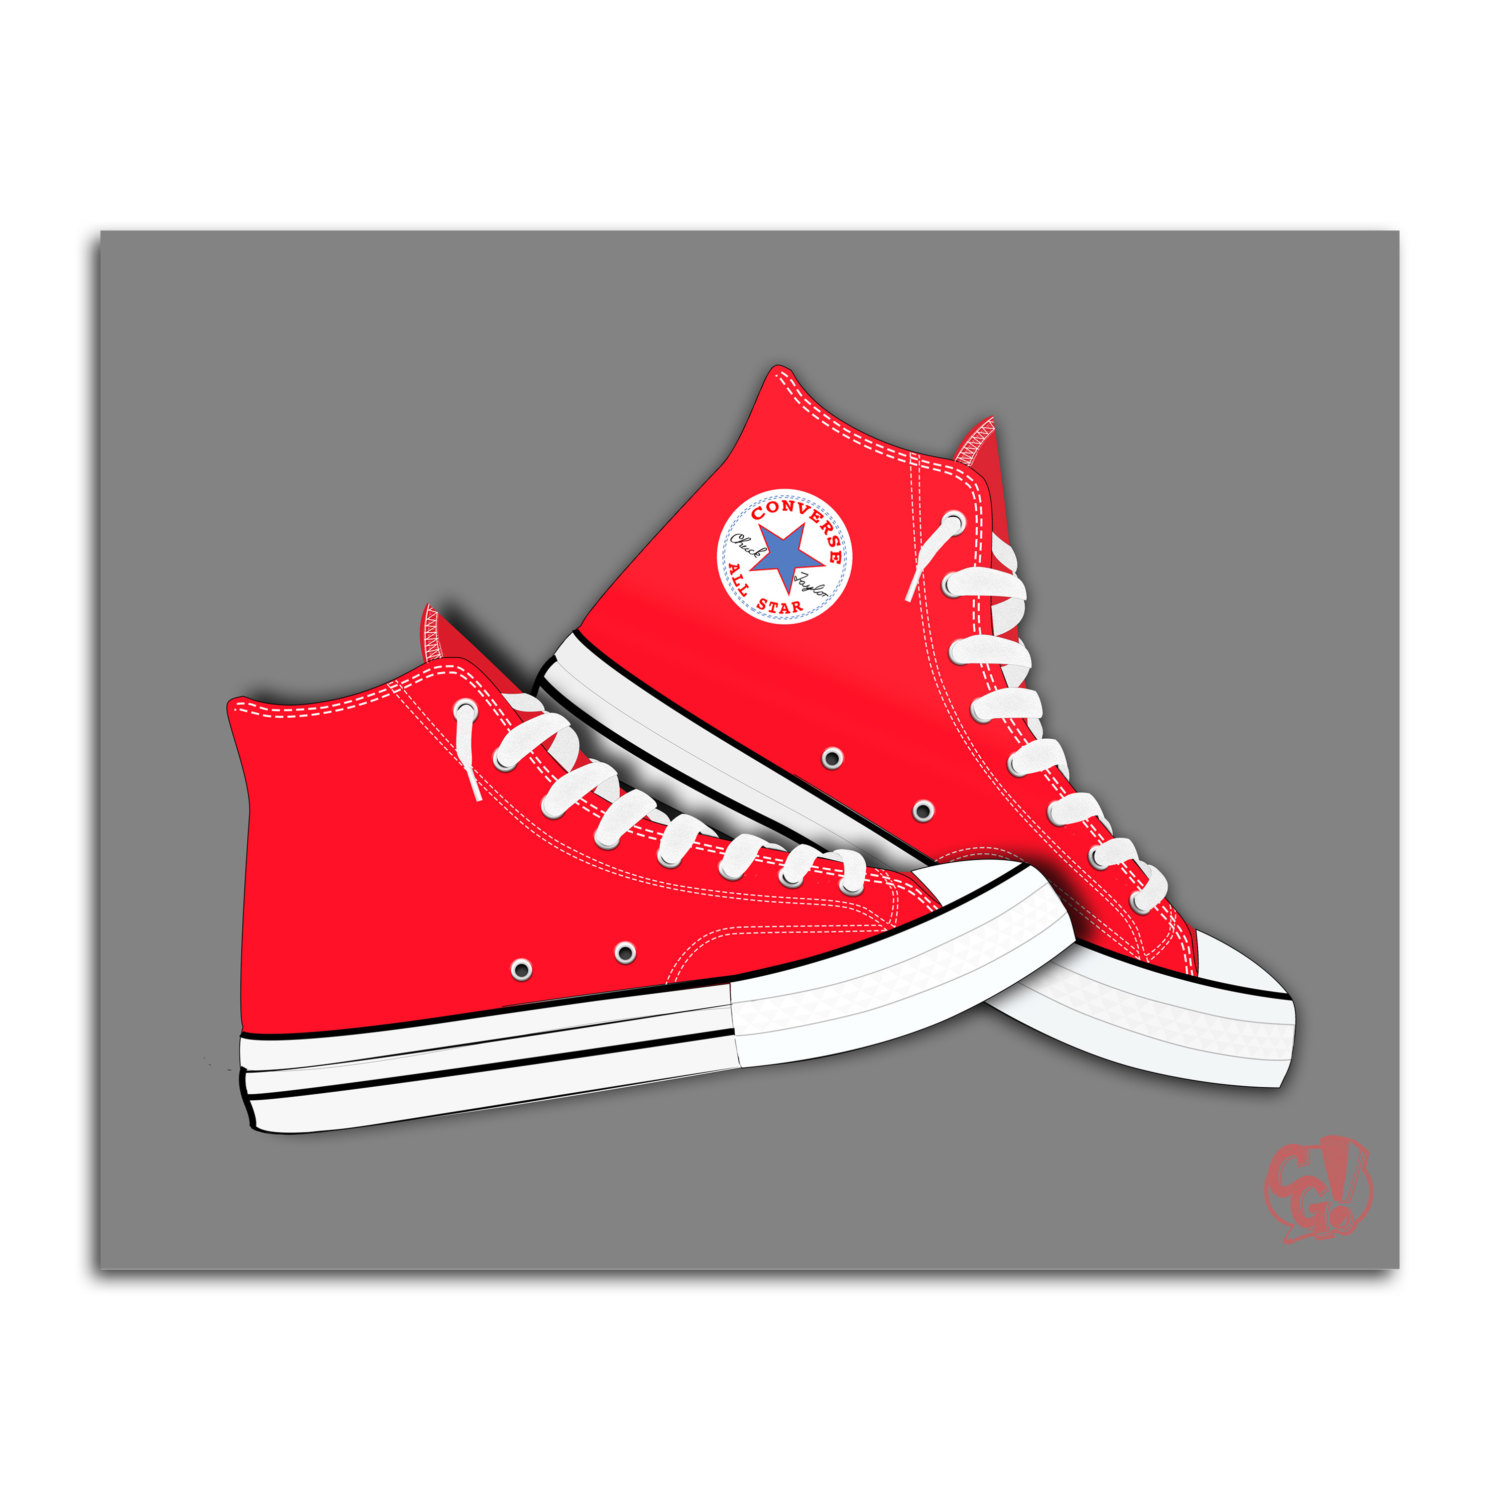 Converse clipart red converse This Graphic Top Red Converse